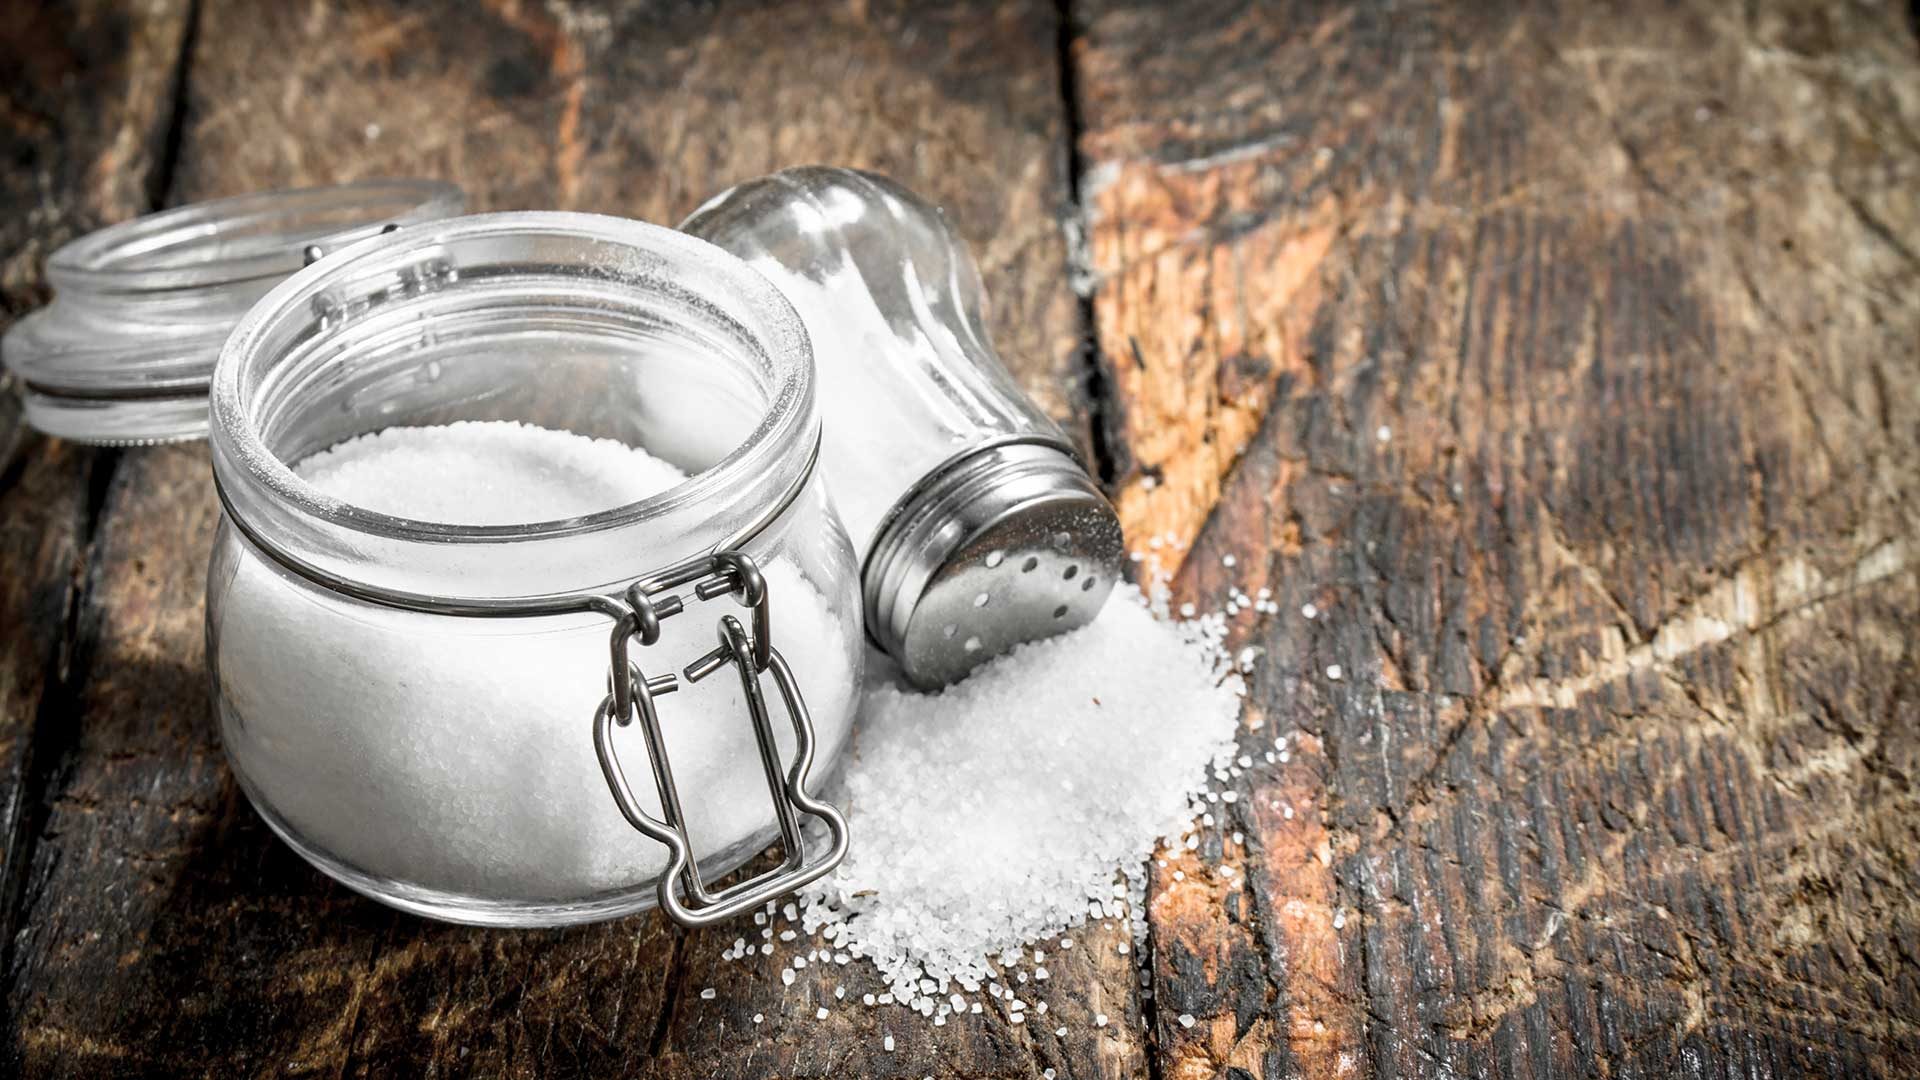 Ask the Expert: Can a Low-Salt Diet Hurt Your Heart?